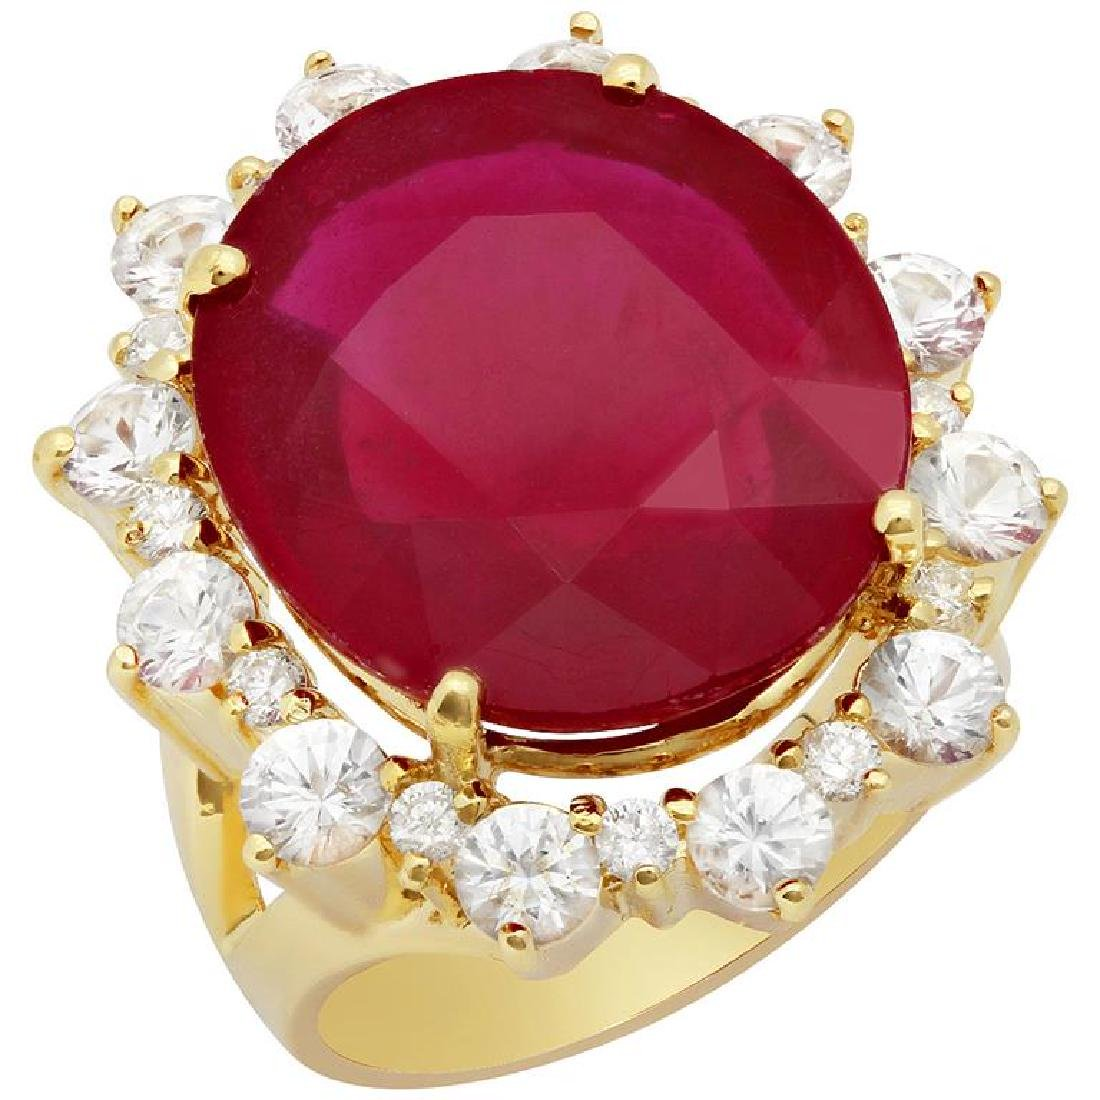 14k Yellow Gold 20.66ct Ruby 2.41ct Sapphire 0.41ct